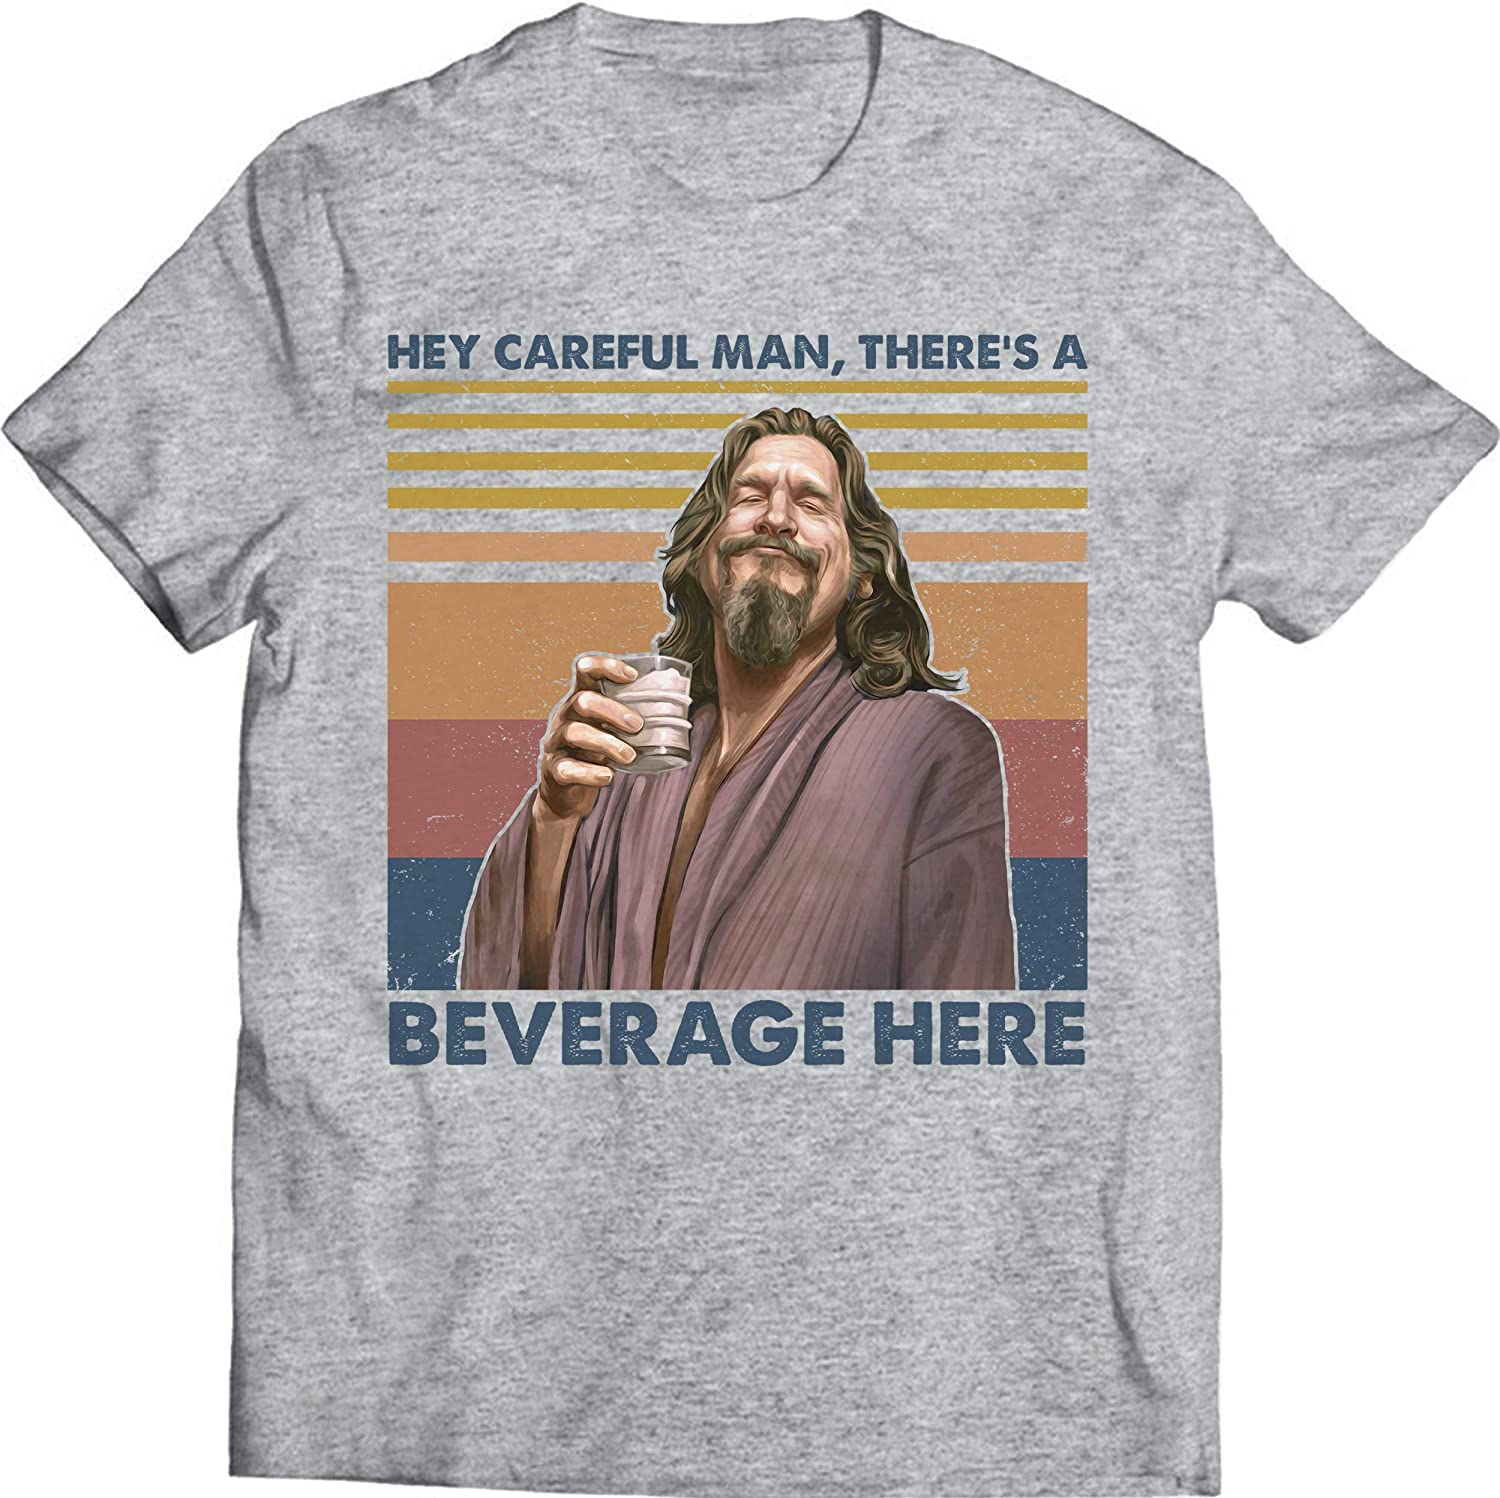 Hey Careful Man There's A Beverage Here Funny Vintage T Shirt Big Lebowski Lovers Movie Tshirt